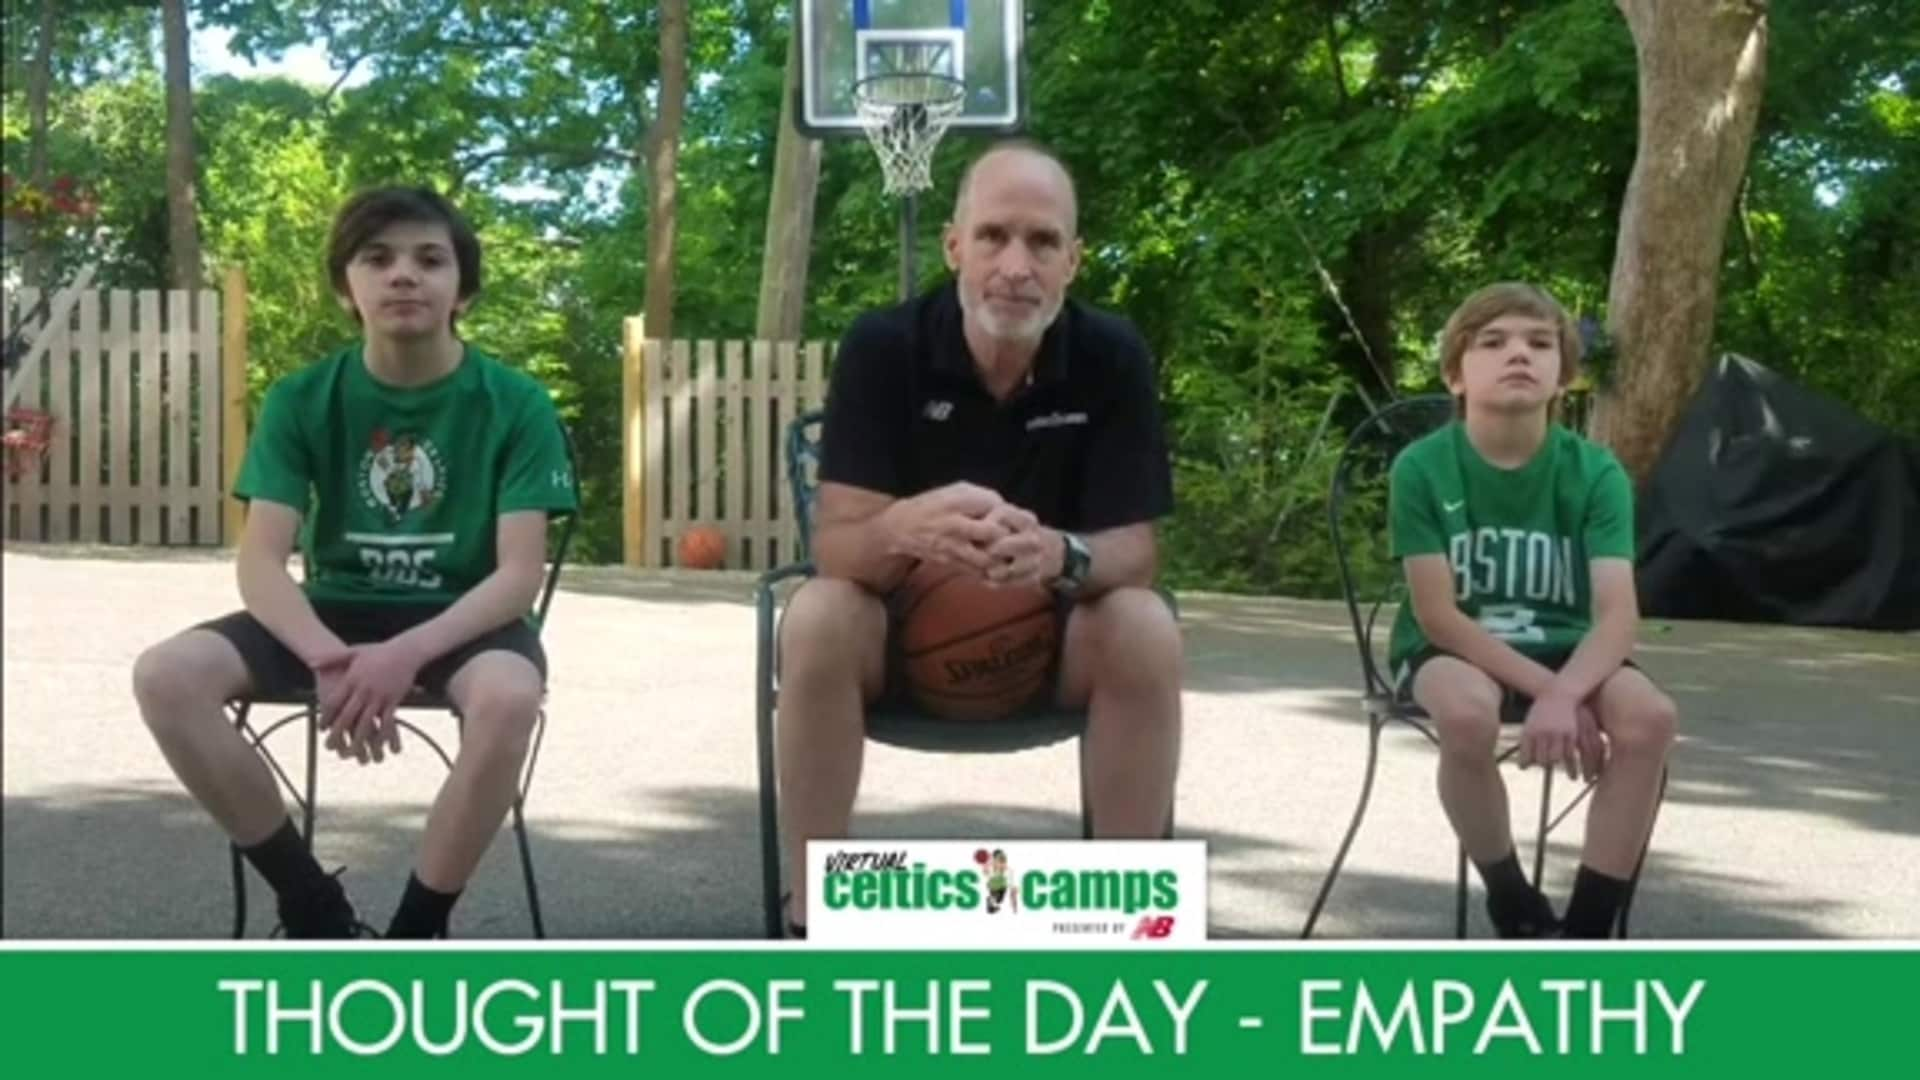 Virtual Celtics Camps - Thought of the Day Empathy